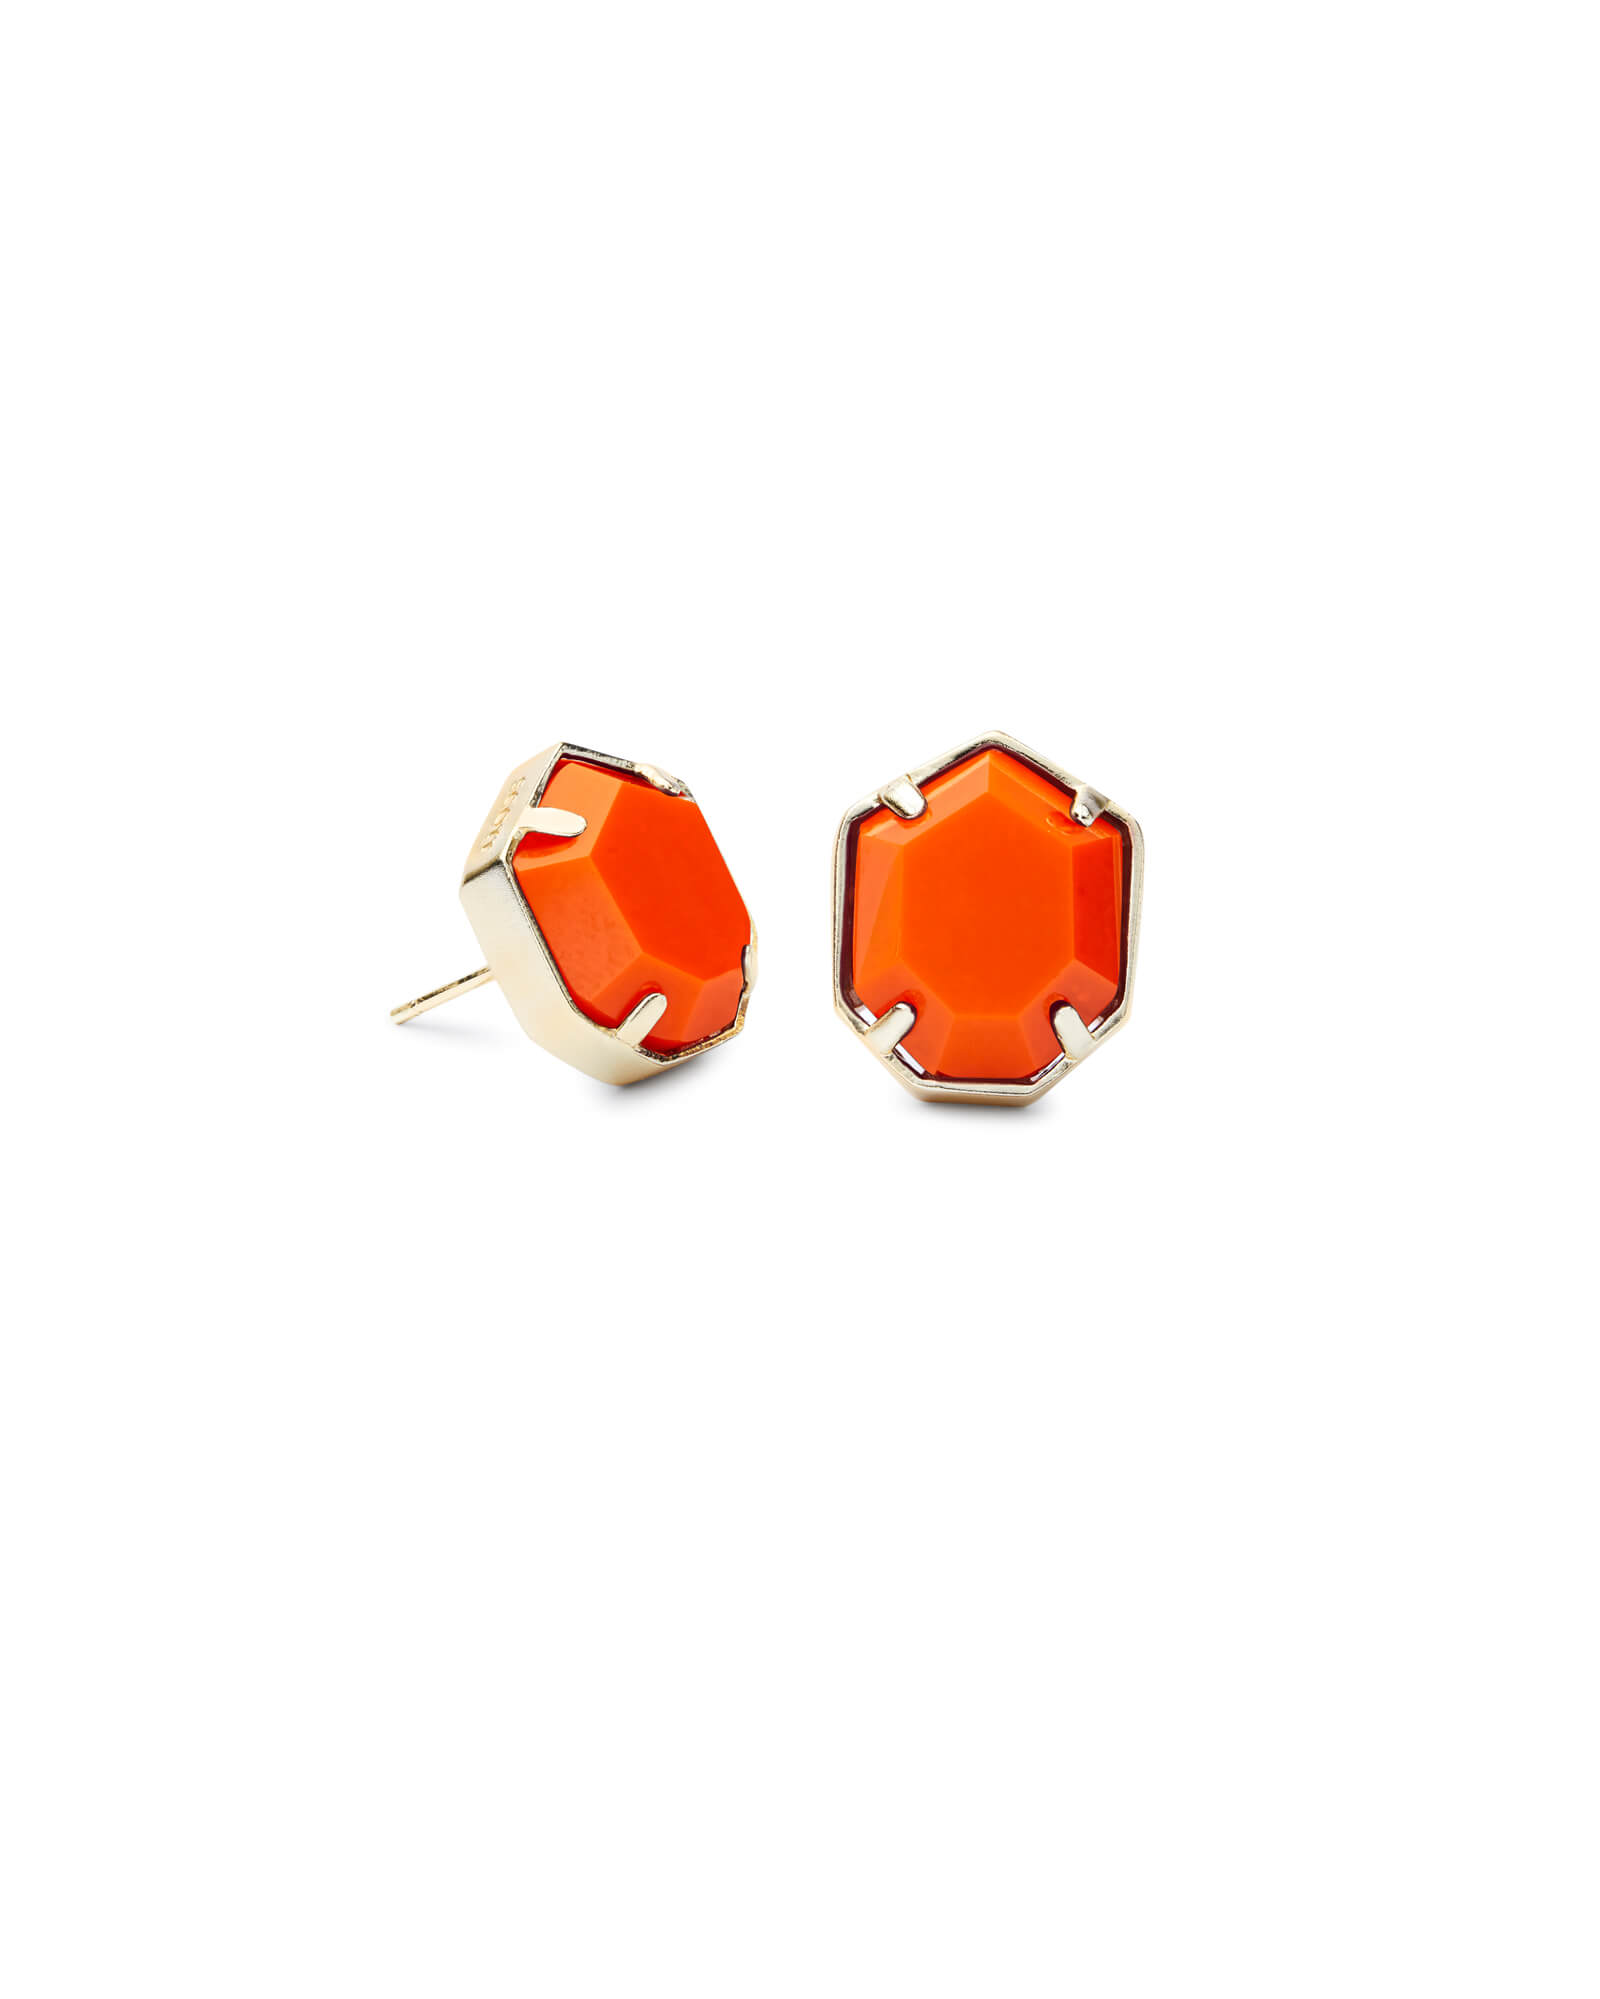 Taylor Gold Stud Earrings in Orange